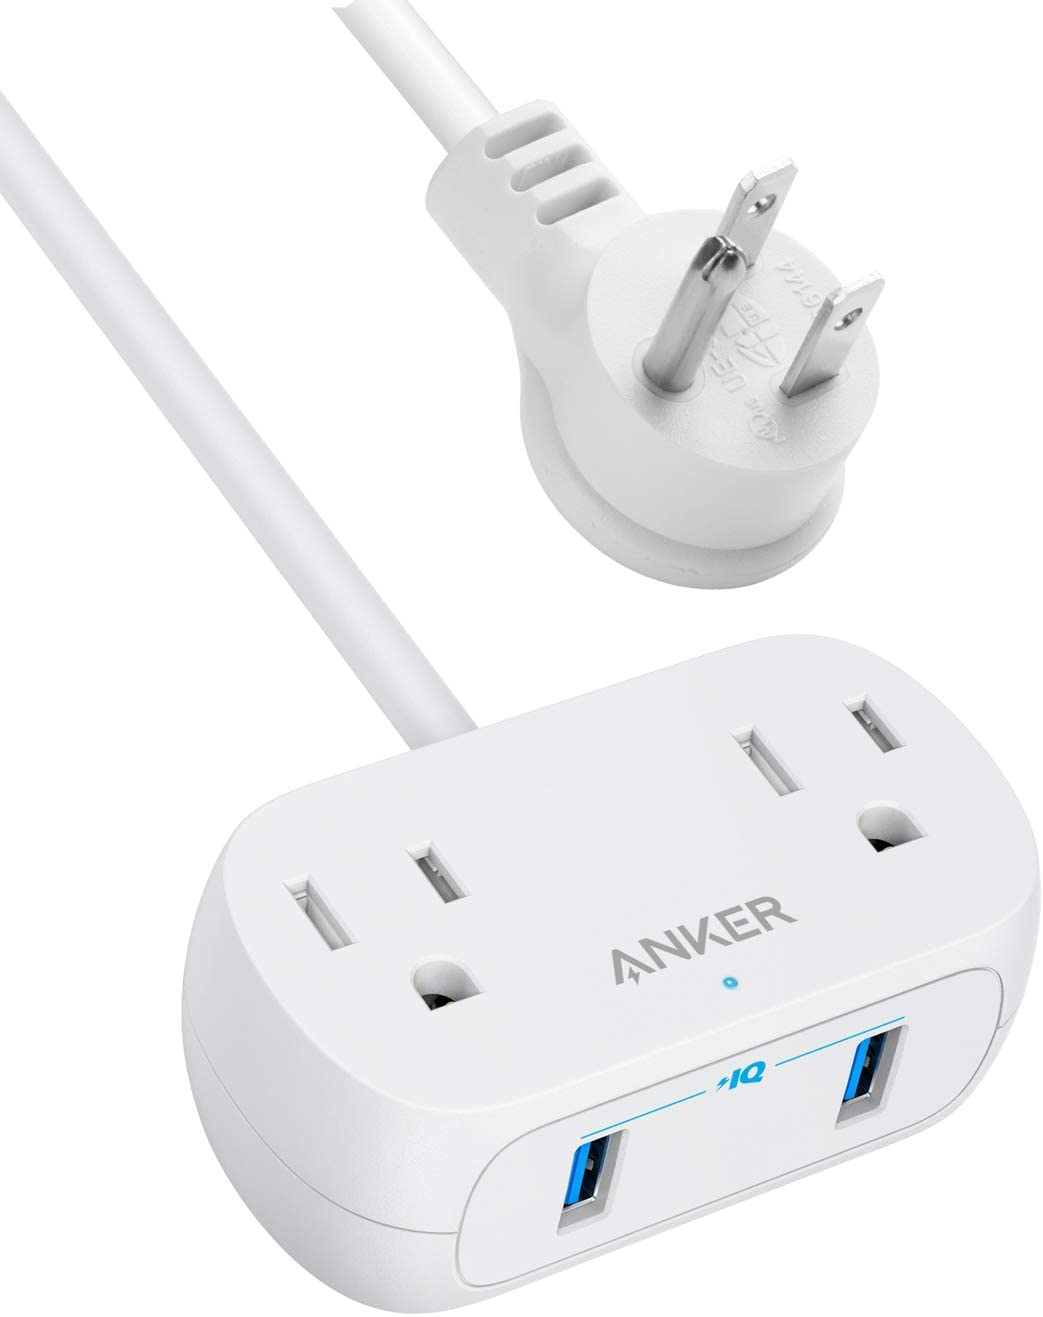 Anker Power Strip with USB PowerExtend USB 2 mini, 2 Outlets, and 2 USB Ports, Flat Plug, 5 ft Extension Cord, Safety System for Travel, Desk, and Home Office